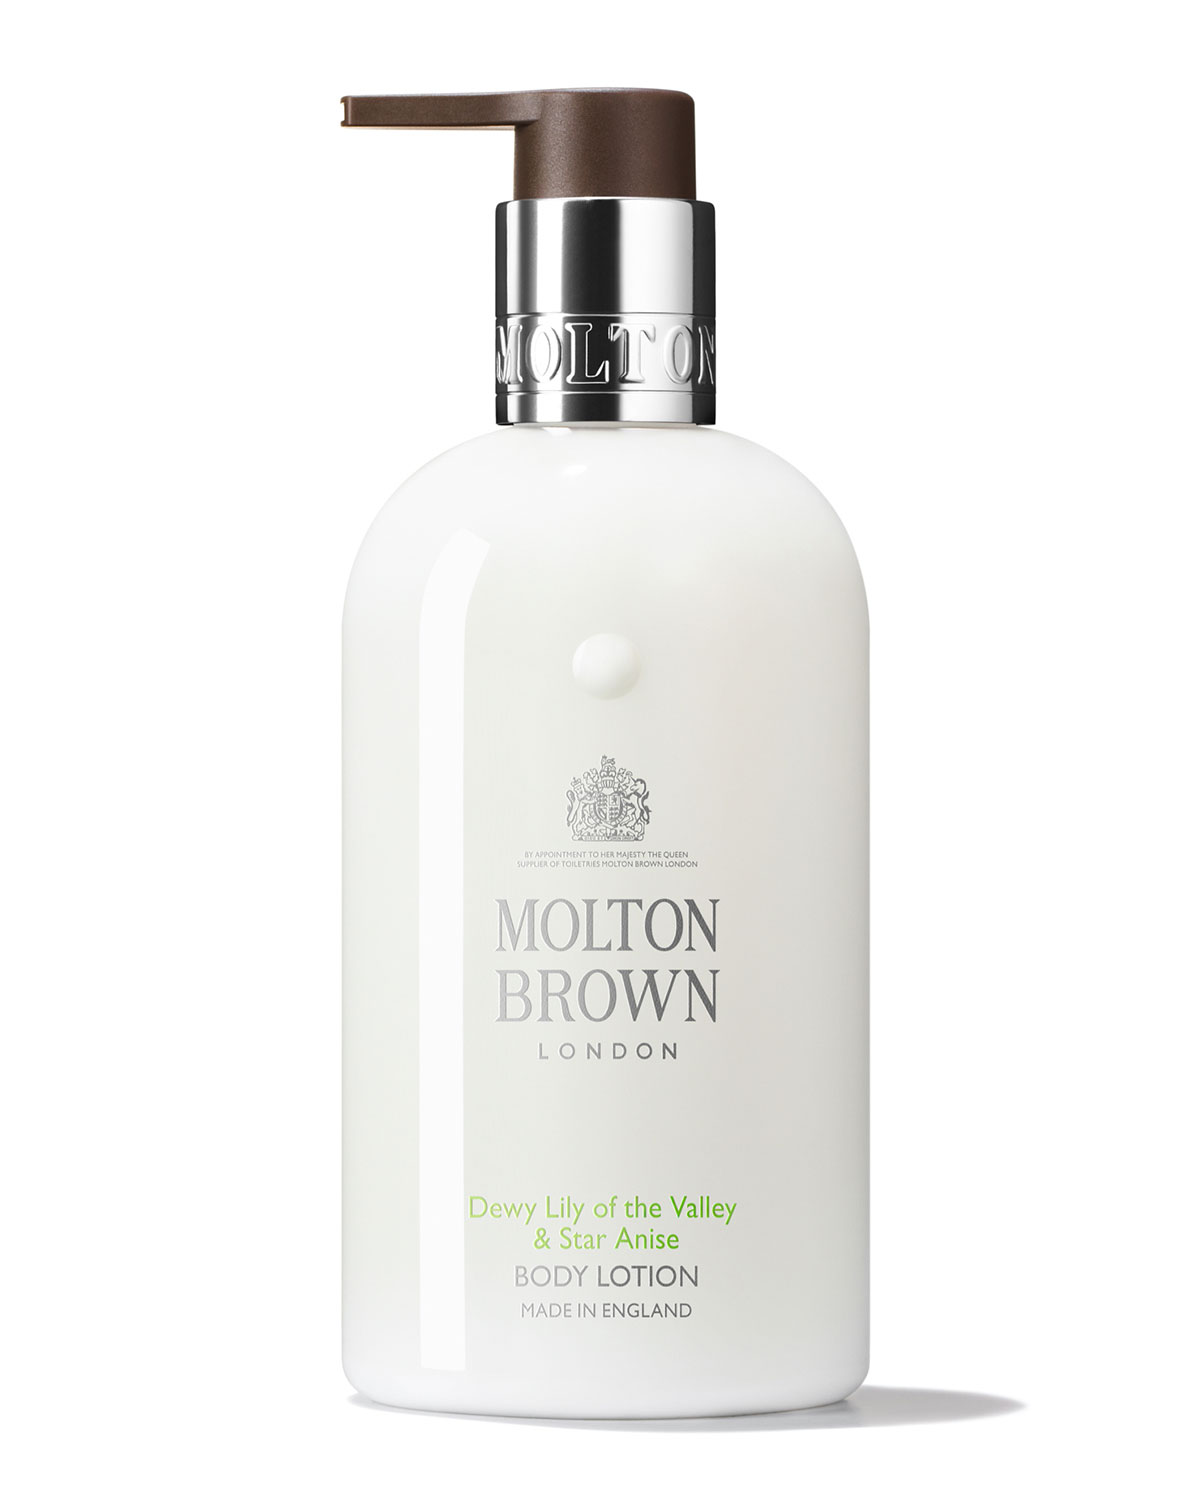 MOLTON BROWN Dewy Lily Of The Valley & Star Anise Body Lotion, 10 Oz./ 300 Ml